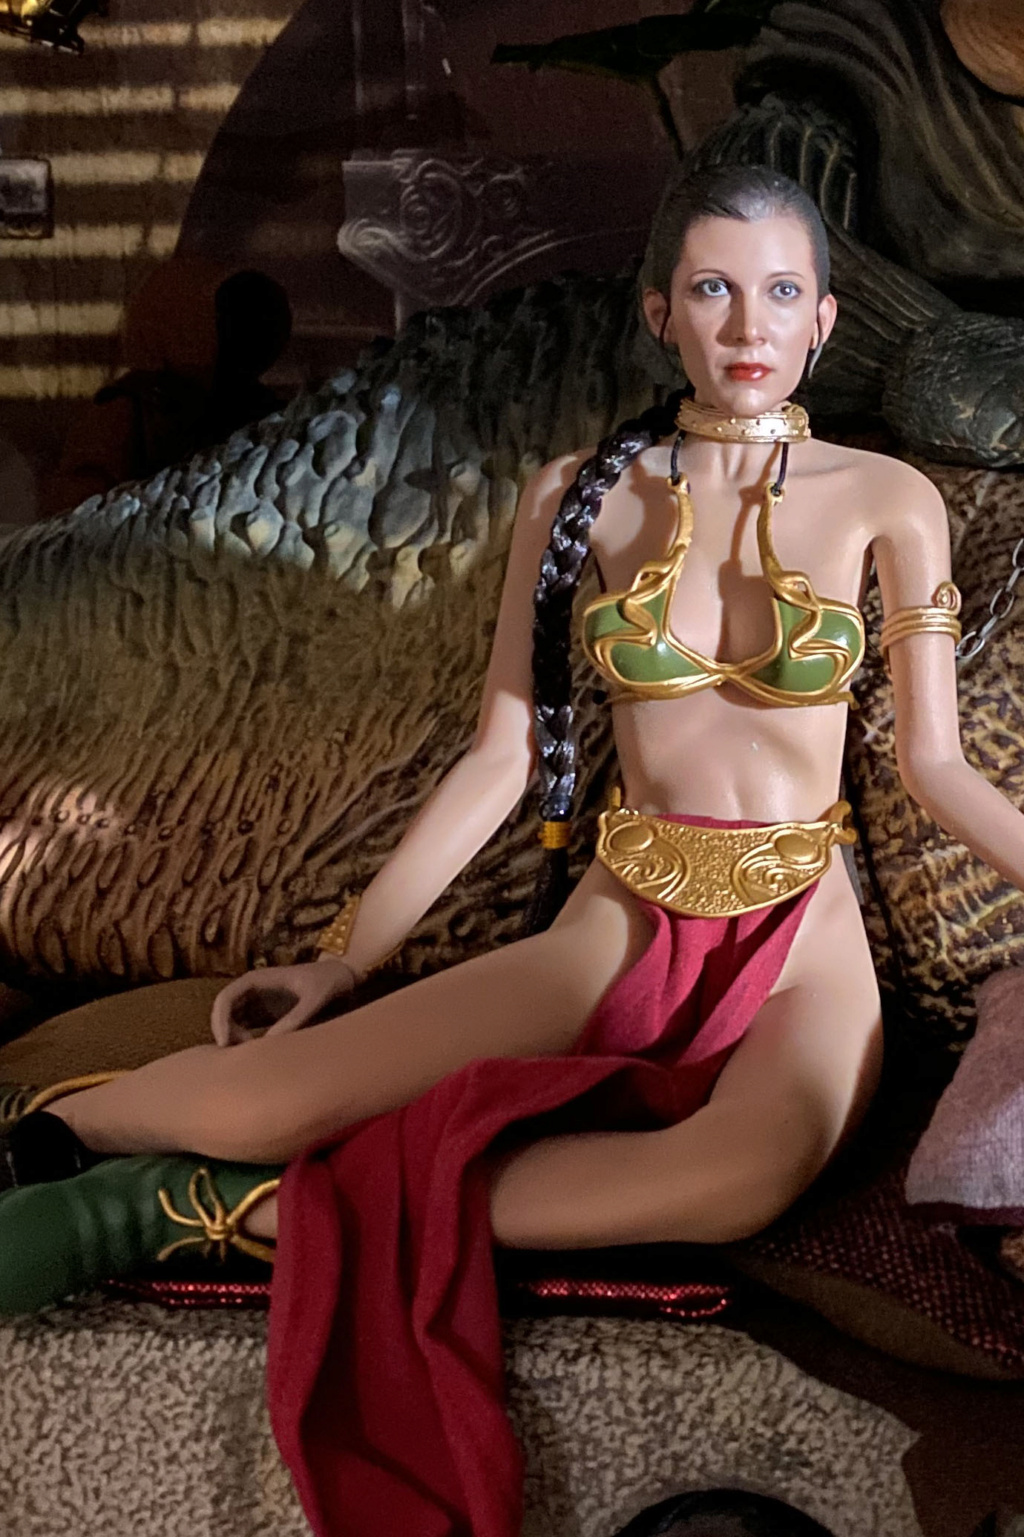 NEW PRODUCT: HOT TOYS: STAR WARS: RETURN OF THE JEDI PRINCESS LEIA 1/6TH SCALE COLLECTIBLE FIGURE Img_8423